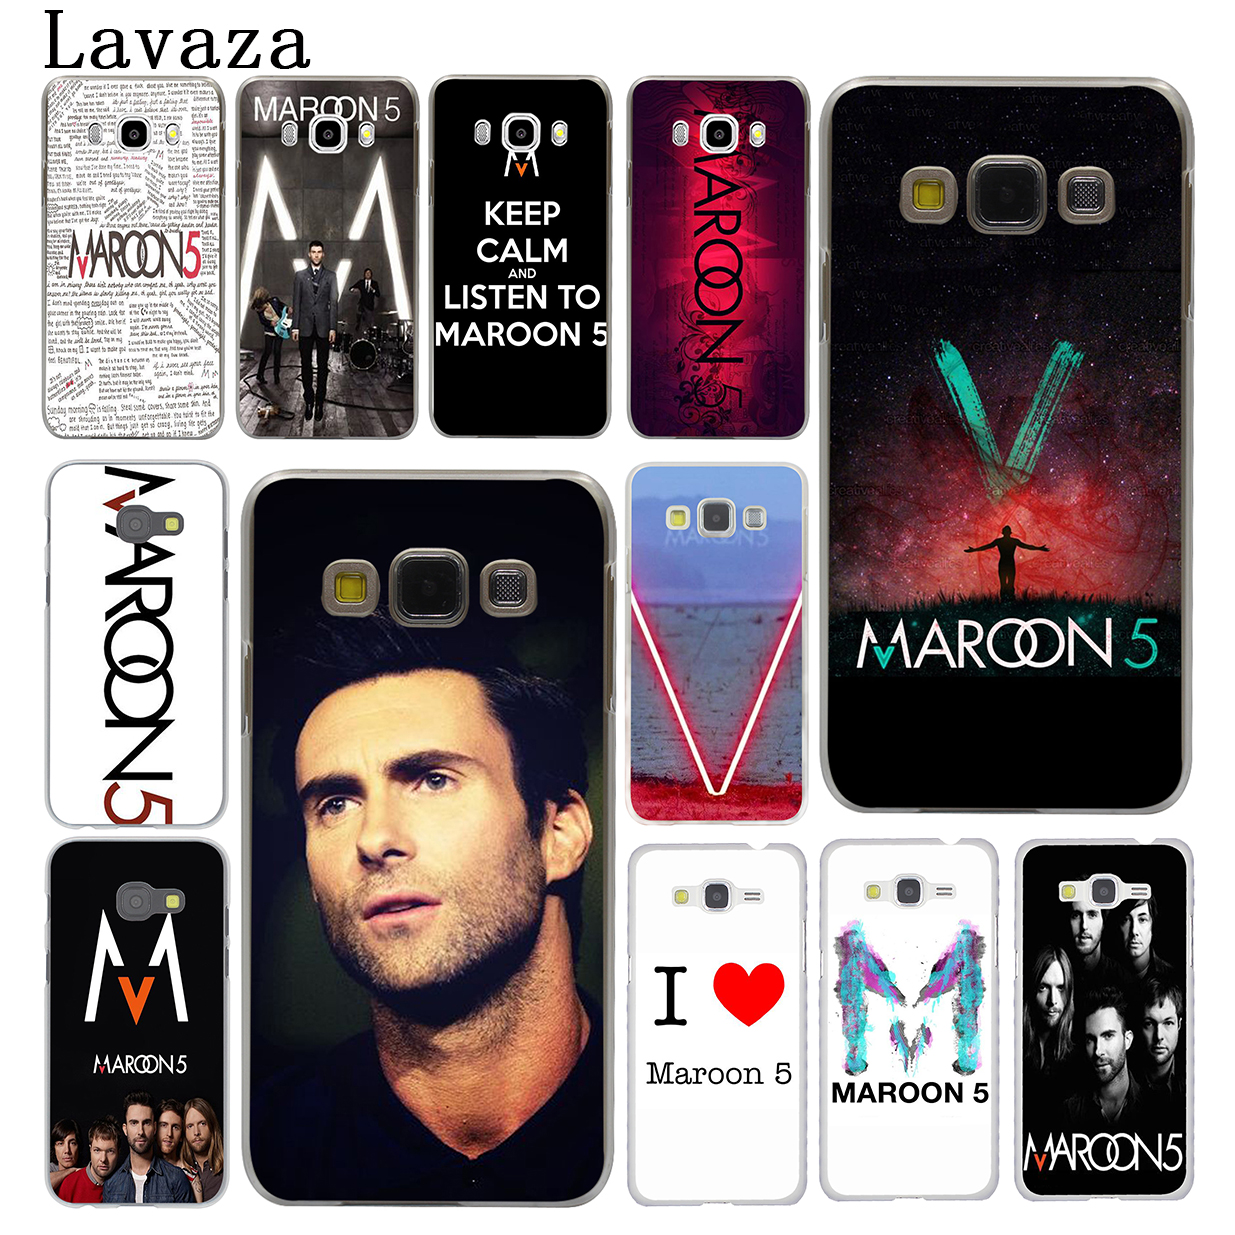 Lavaza maroon 5 Hard Phone Case for Samsung Galaxy J7 J1 J2 J3 J5 2015 2016 2017 Prime Pro Ace 2018 Cover